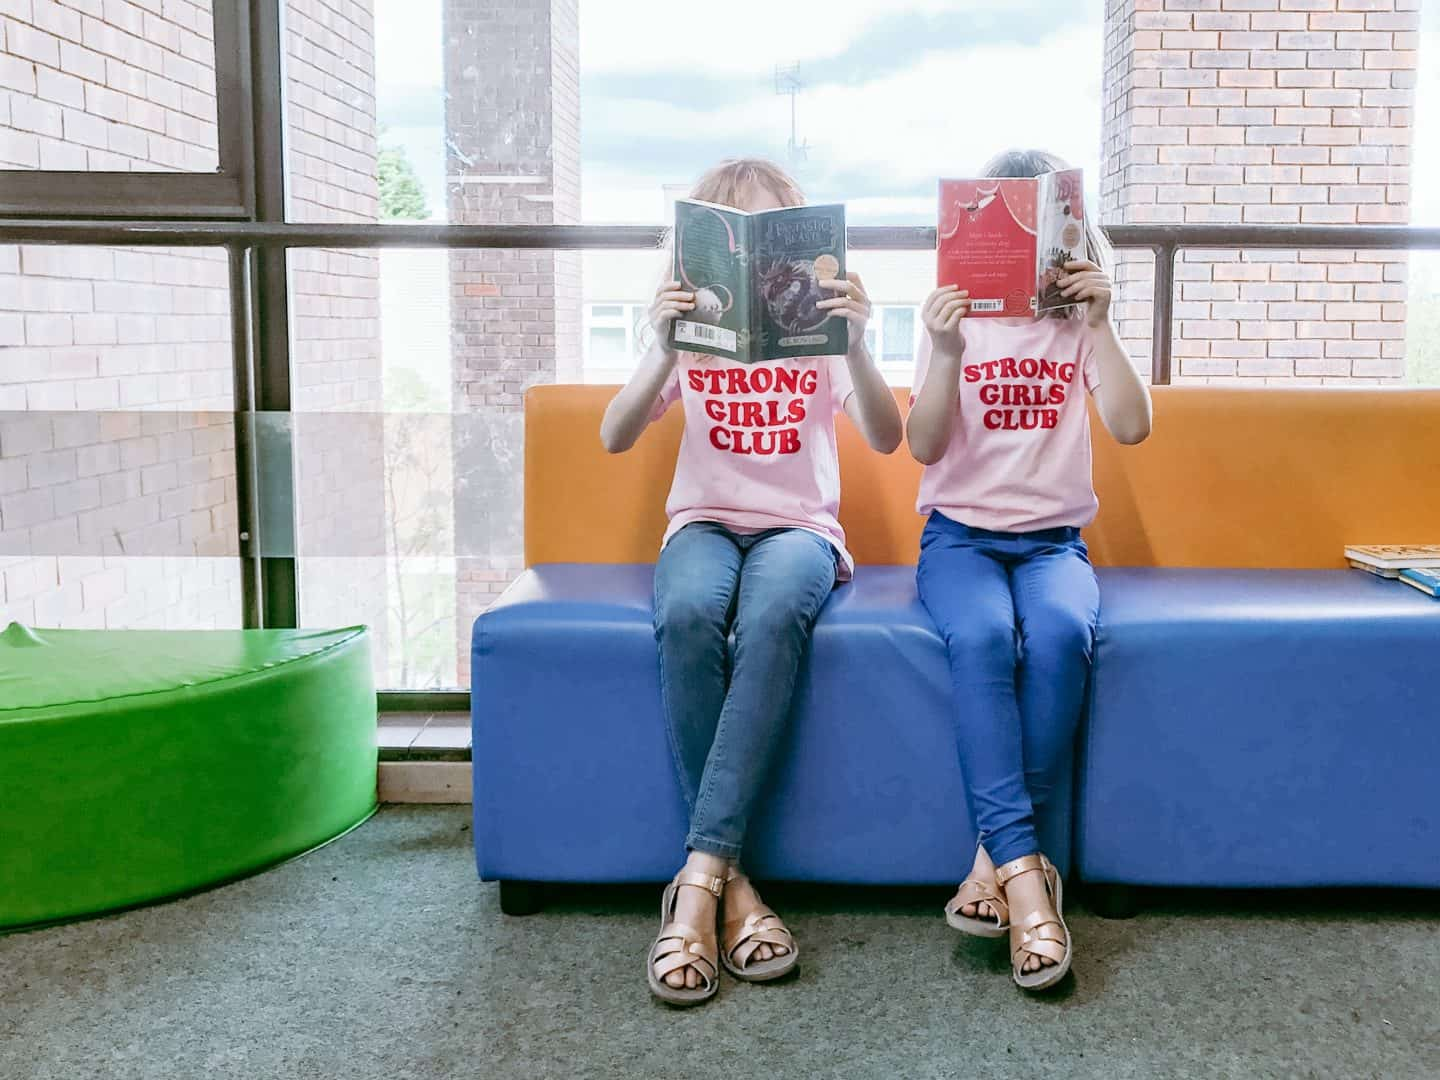 Wearing Strong Girls Club ethical t-shirts in a library